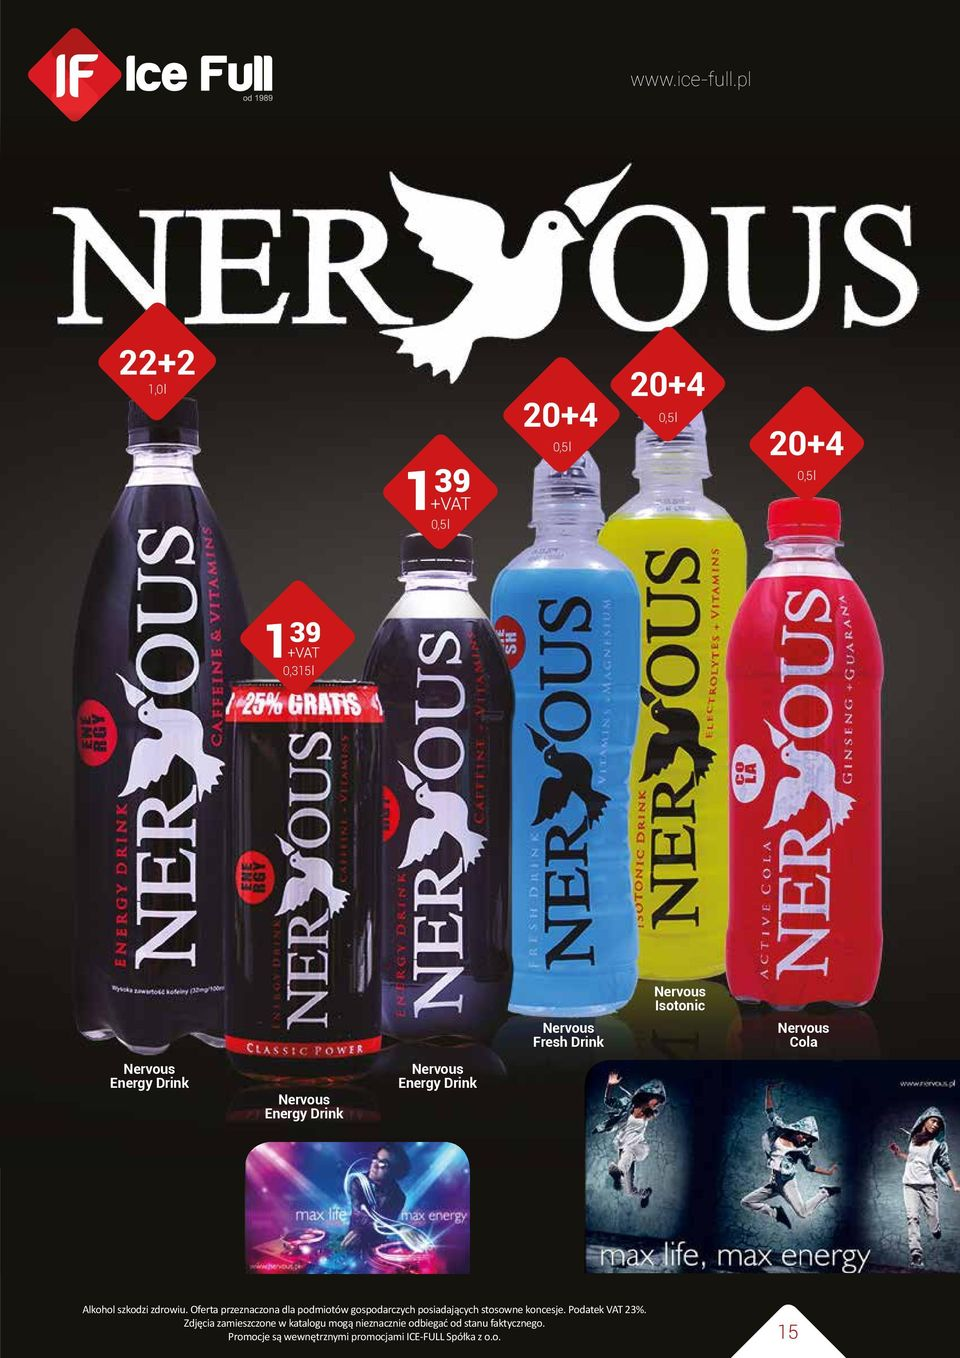 Energy Drink Nervous Fresh